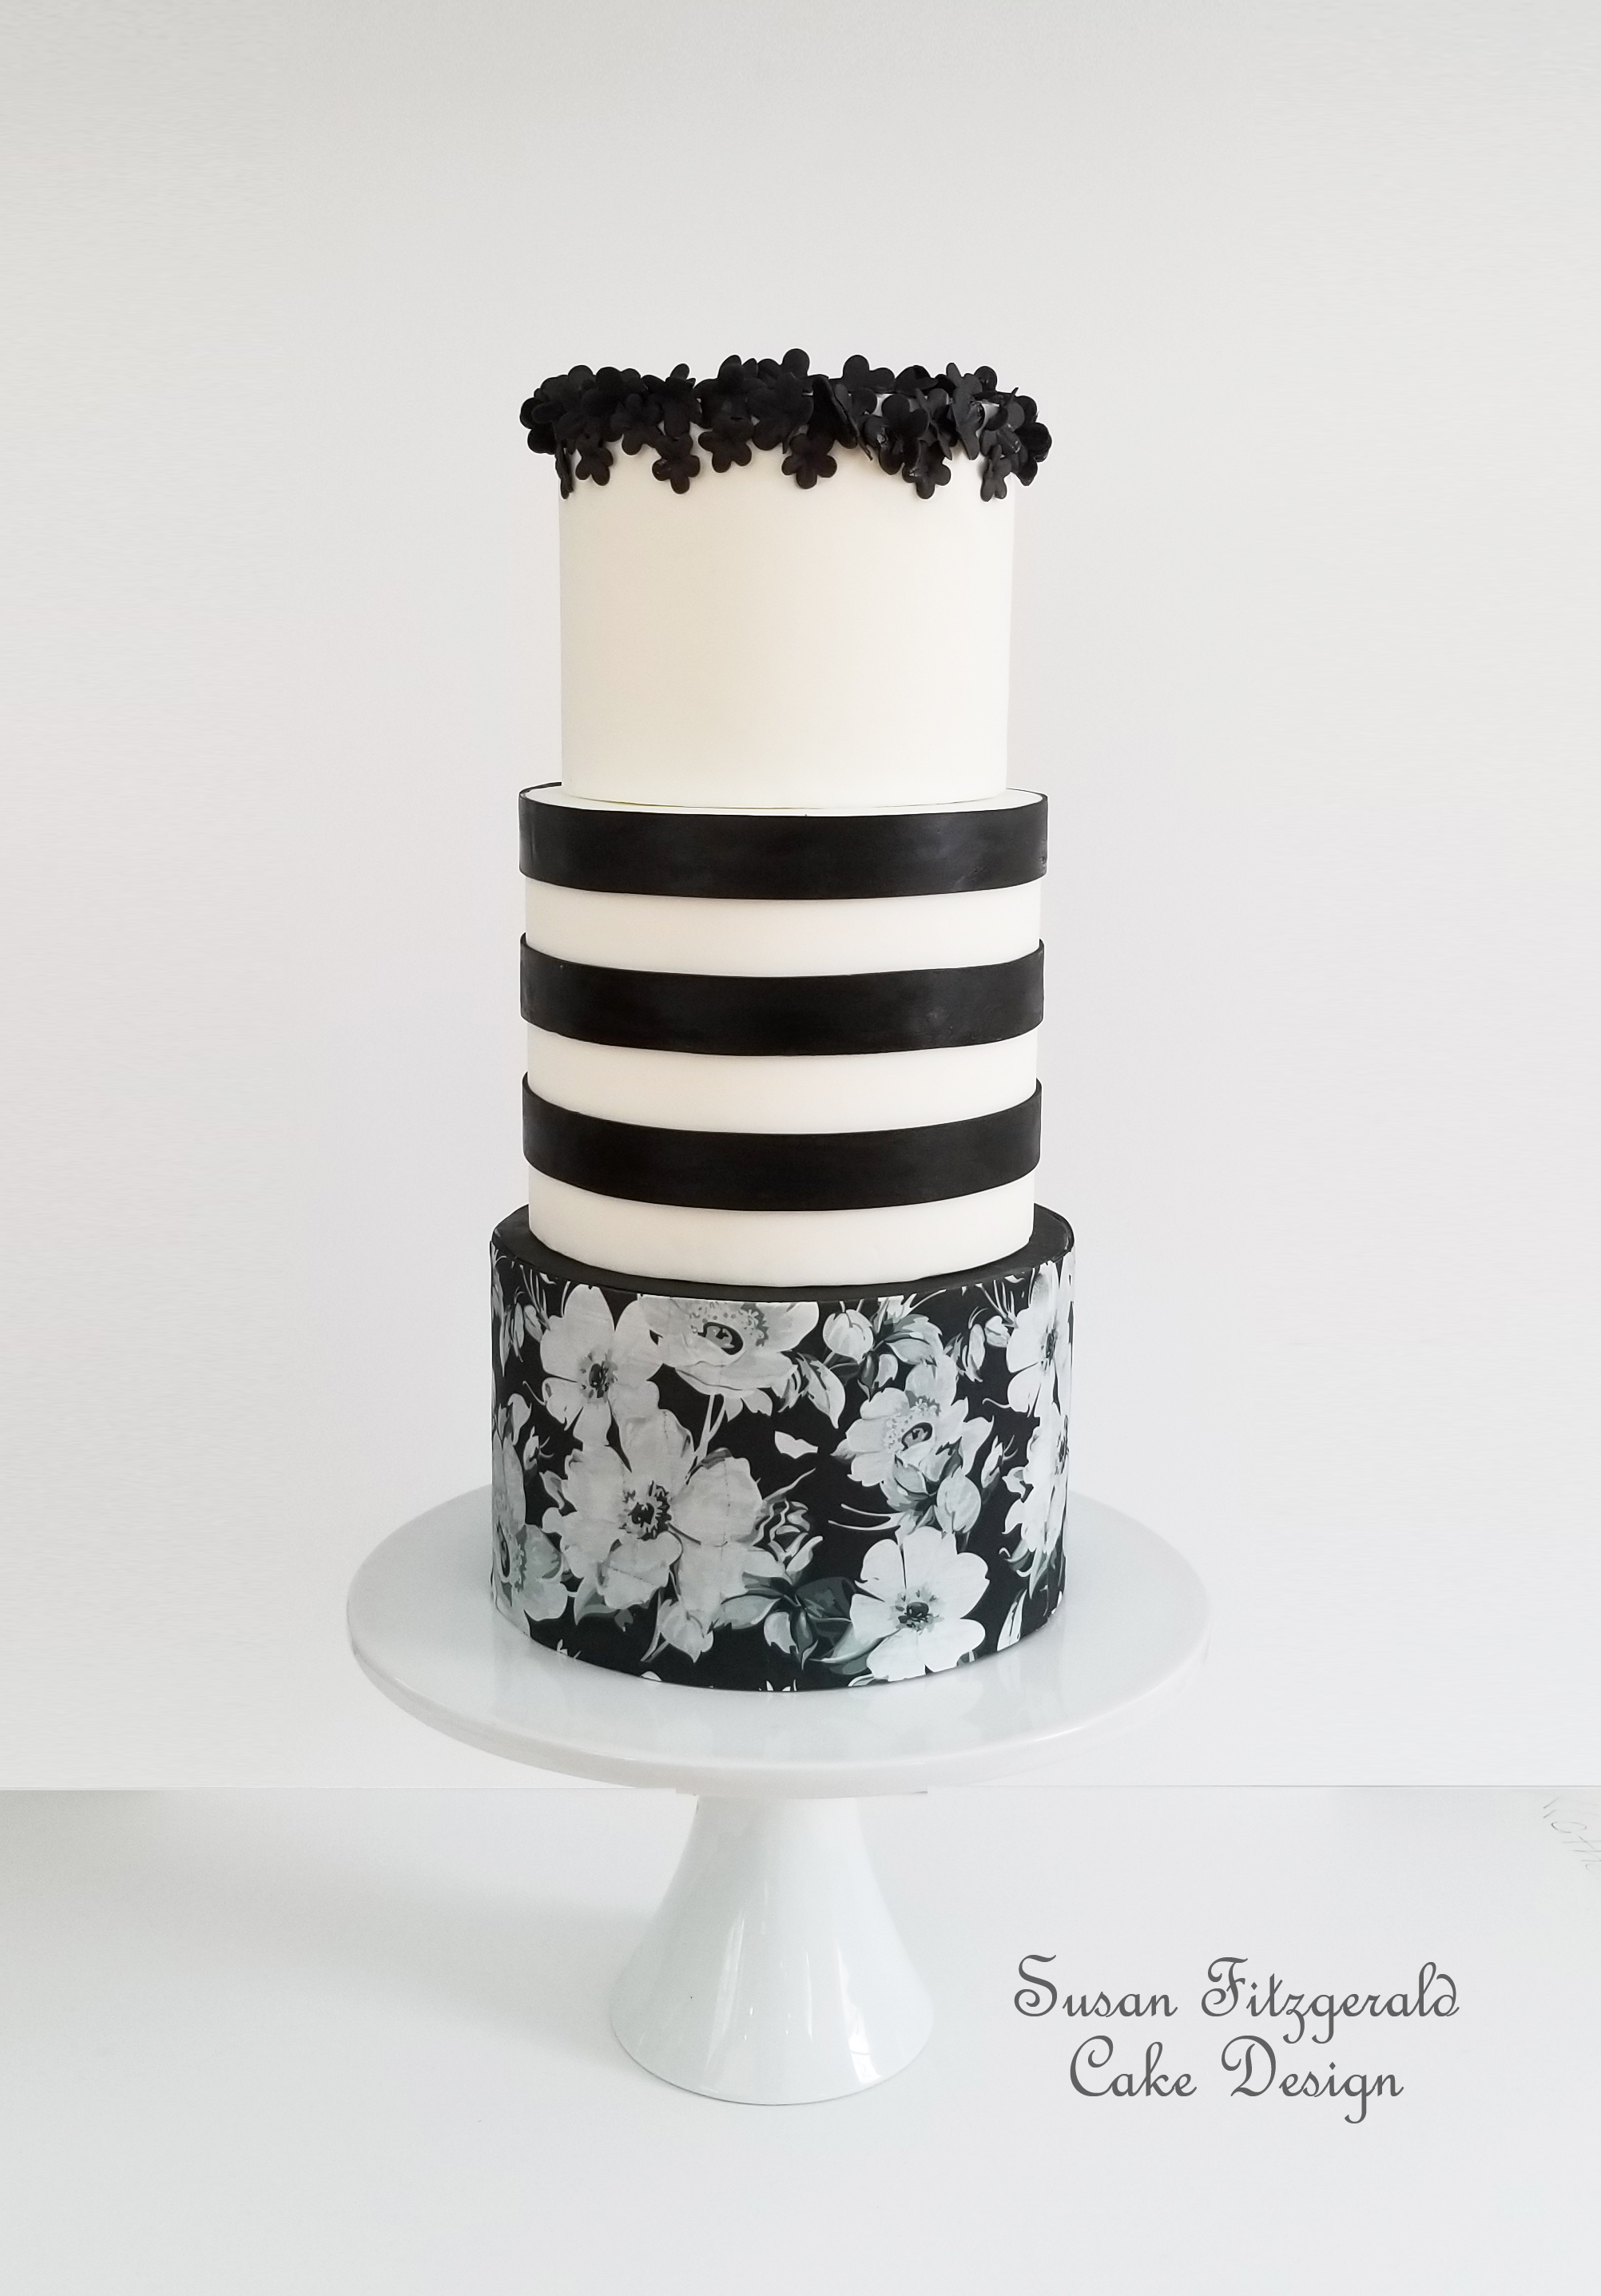 Black and white fondant cake with black sugar flowers